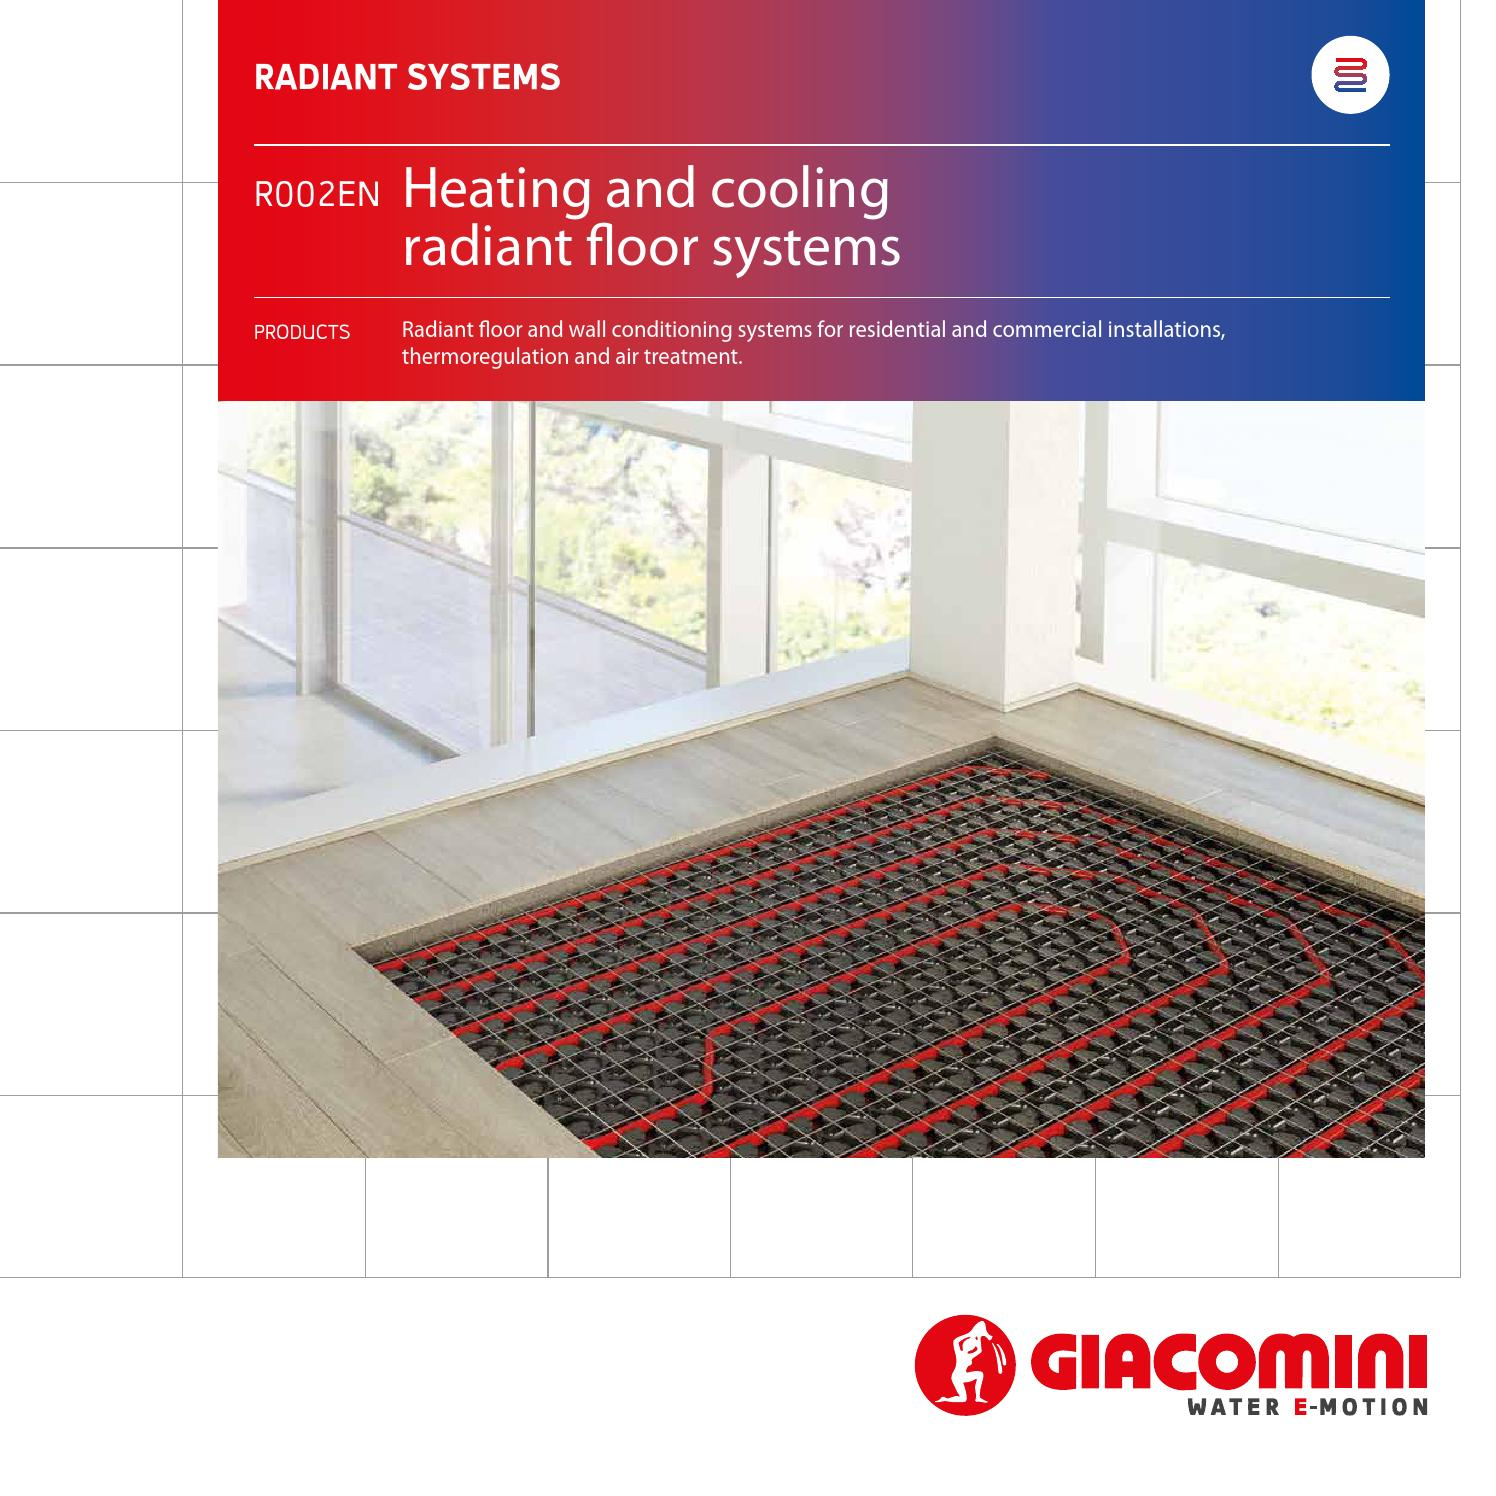 tarp radiant used floor pin a insul in heat application insulation system